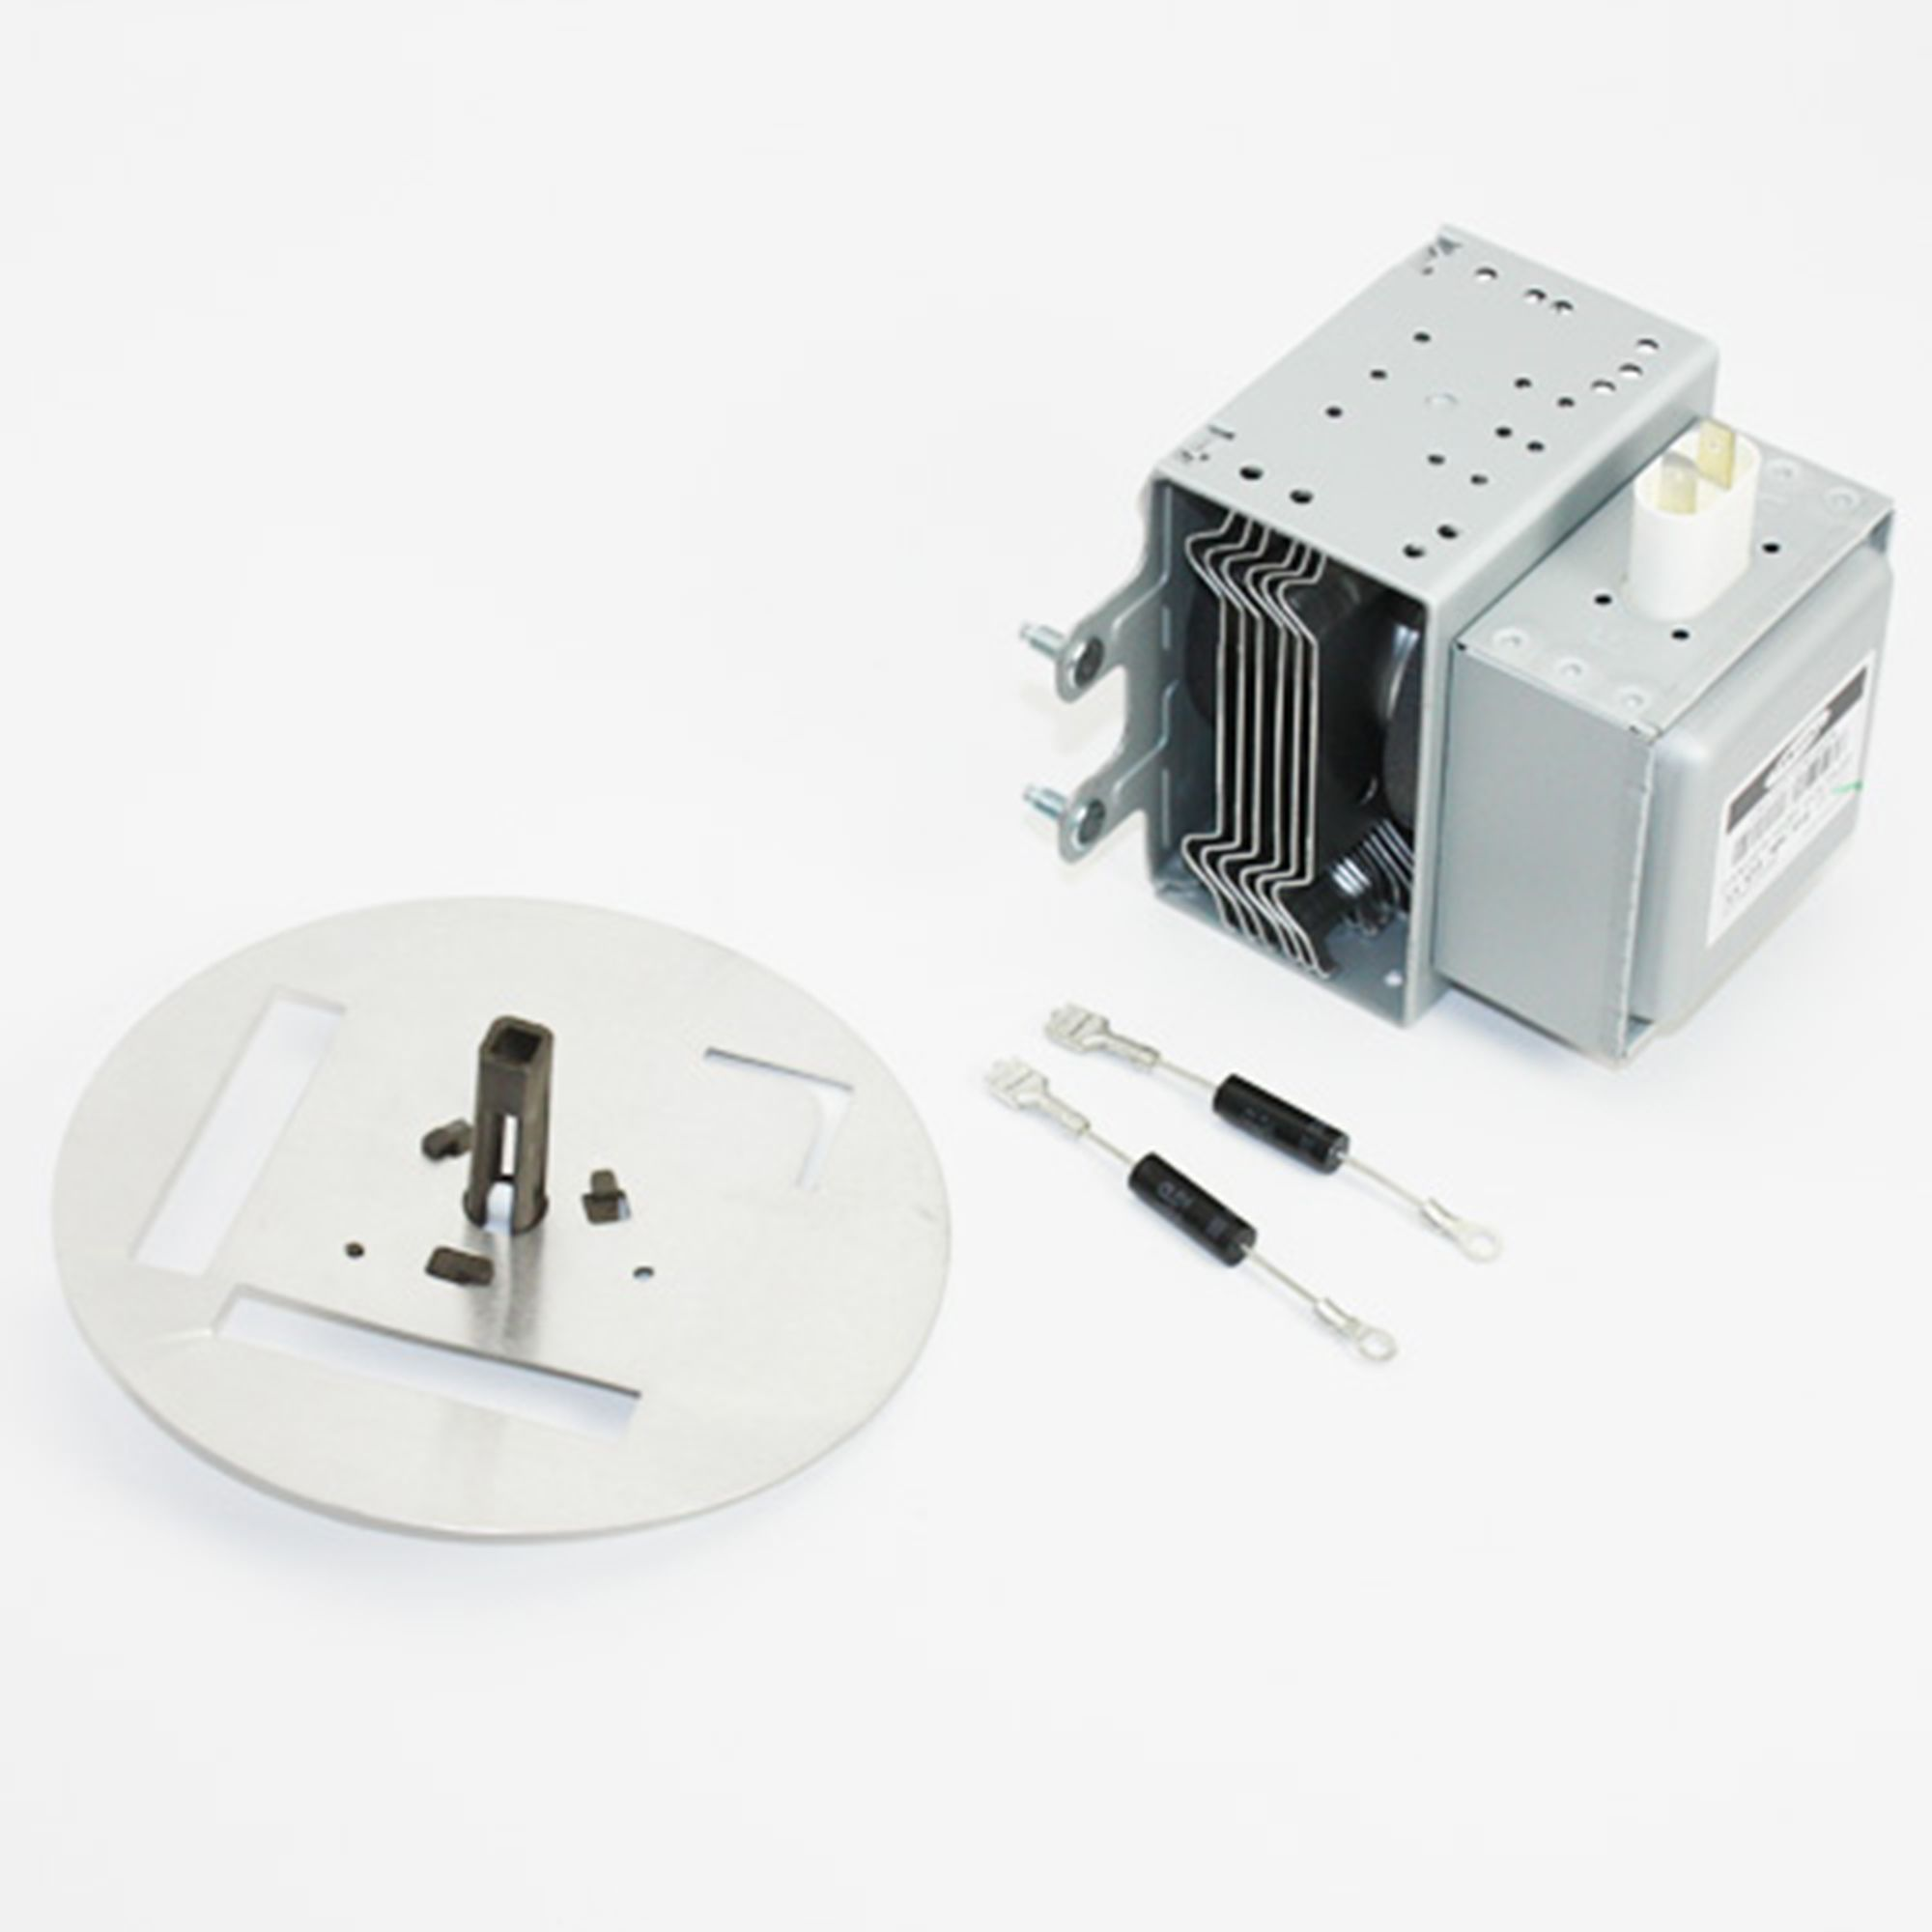 WB49X10226 For GE Microwave Magnetron and Stirrer Kit